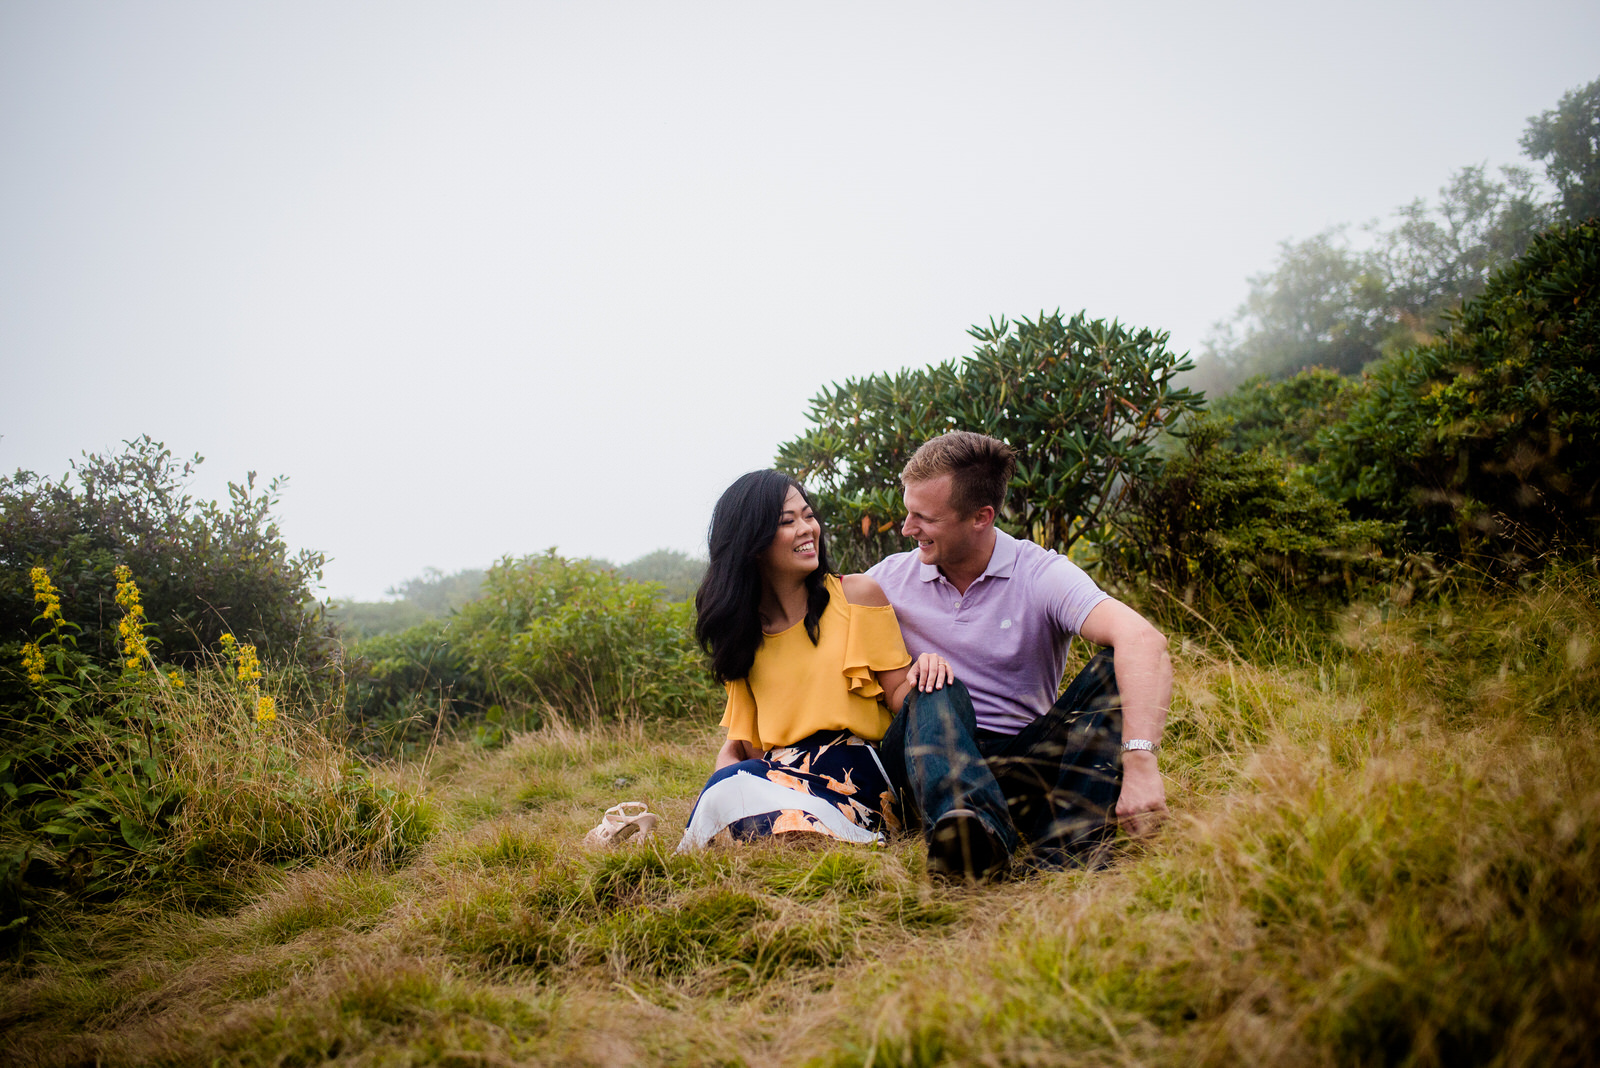 Craggy-Gardens-Engagement-Session-74.jpg